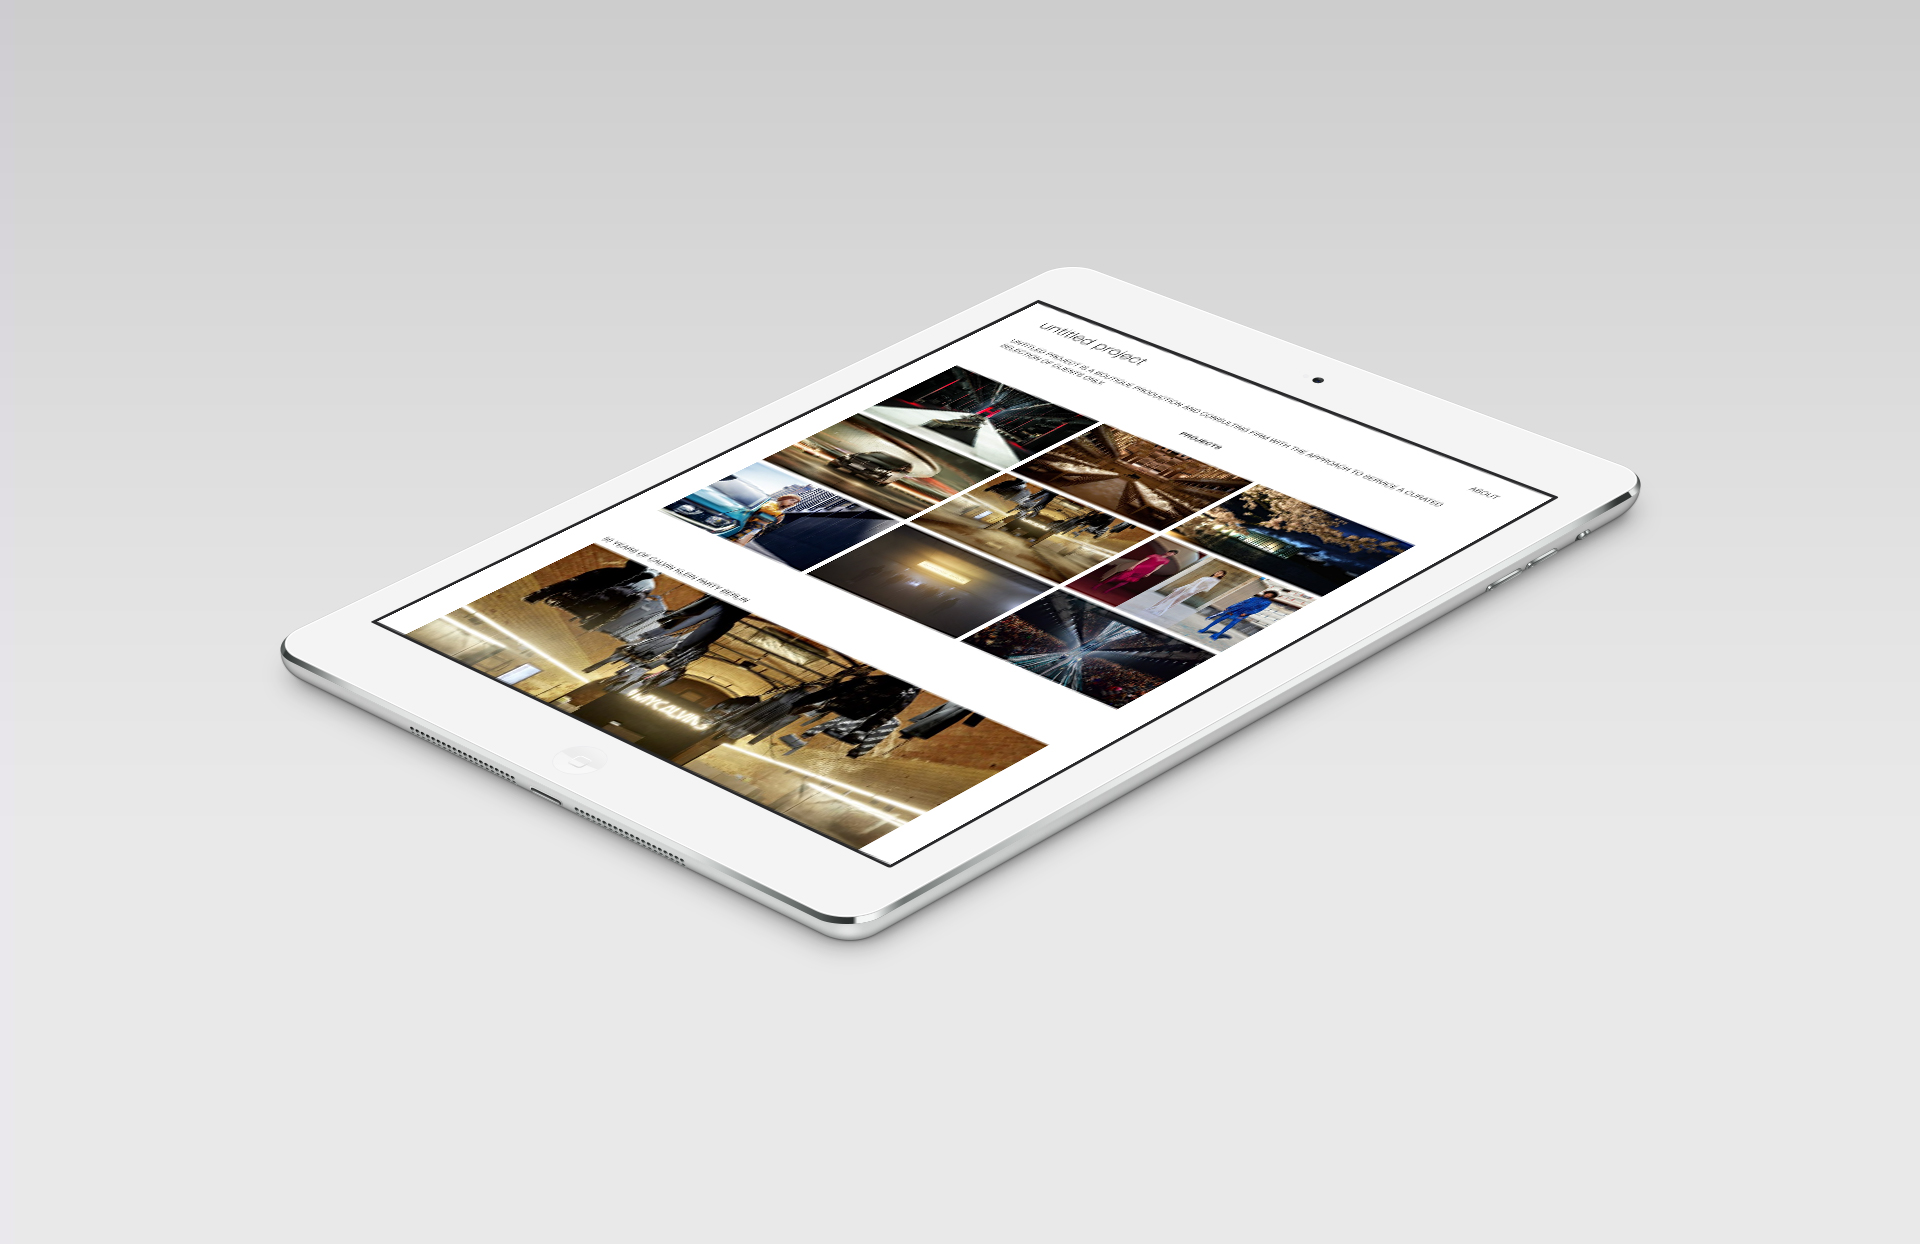 'responsive-webdesign-untitledproject-tablet